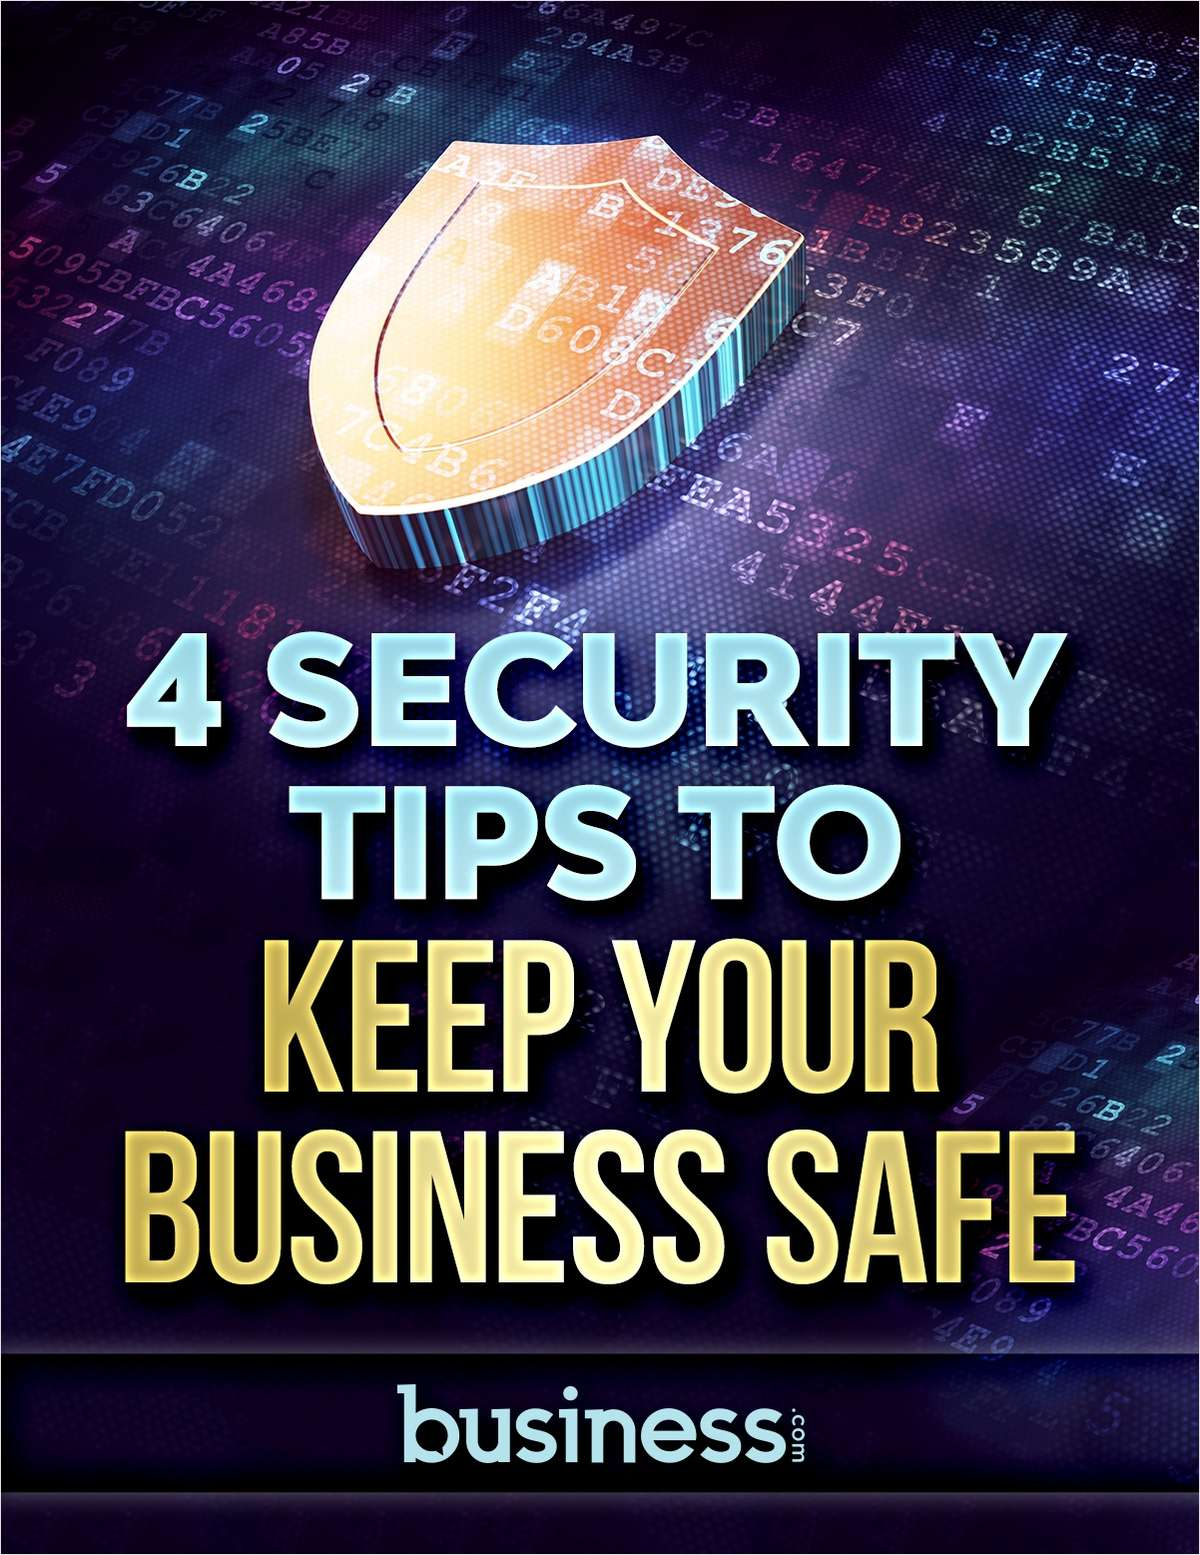 4 Security Tips to Keep Your Business Safe